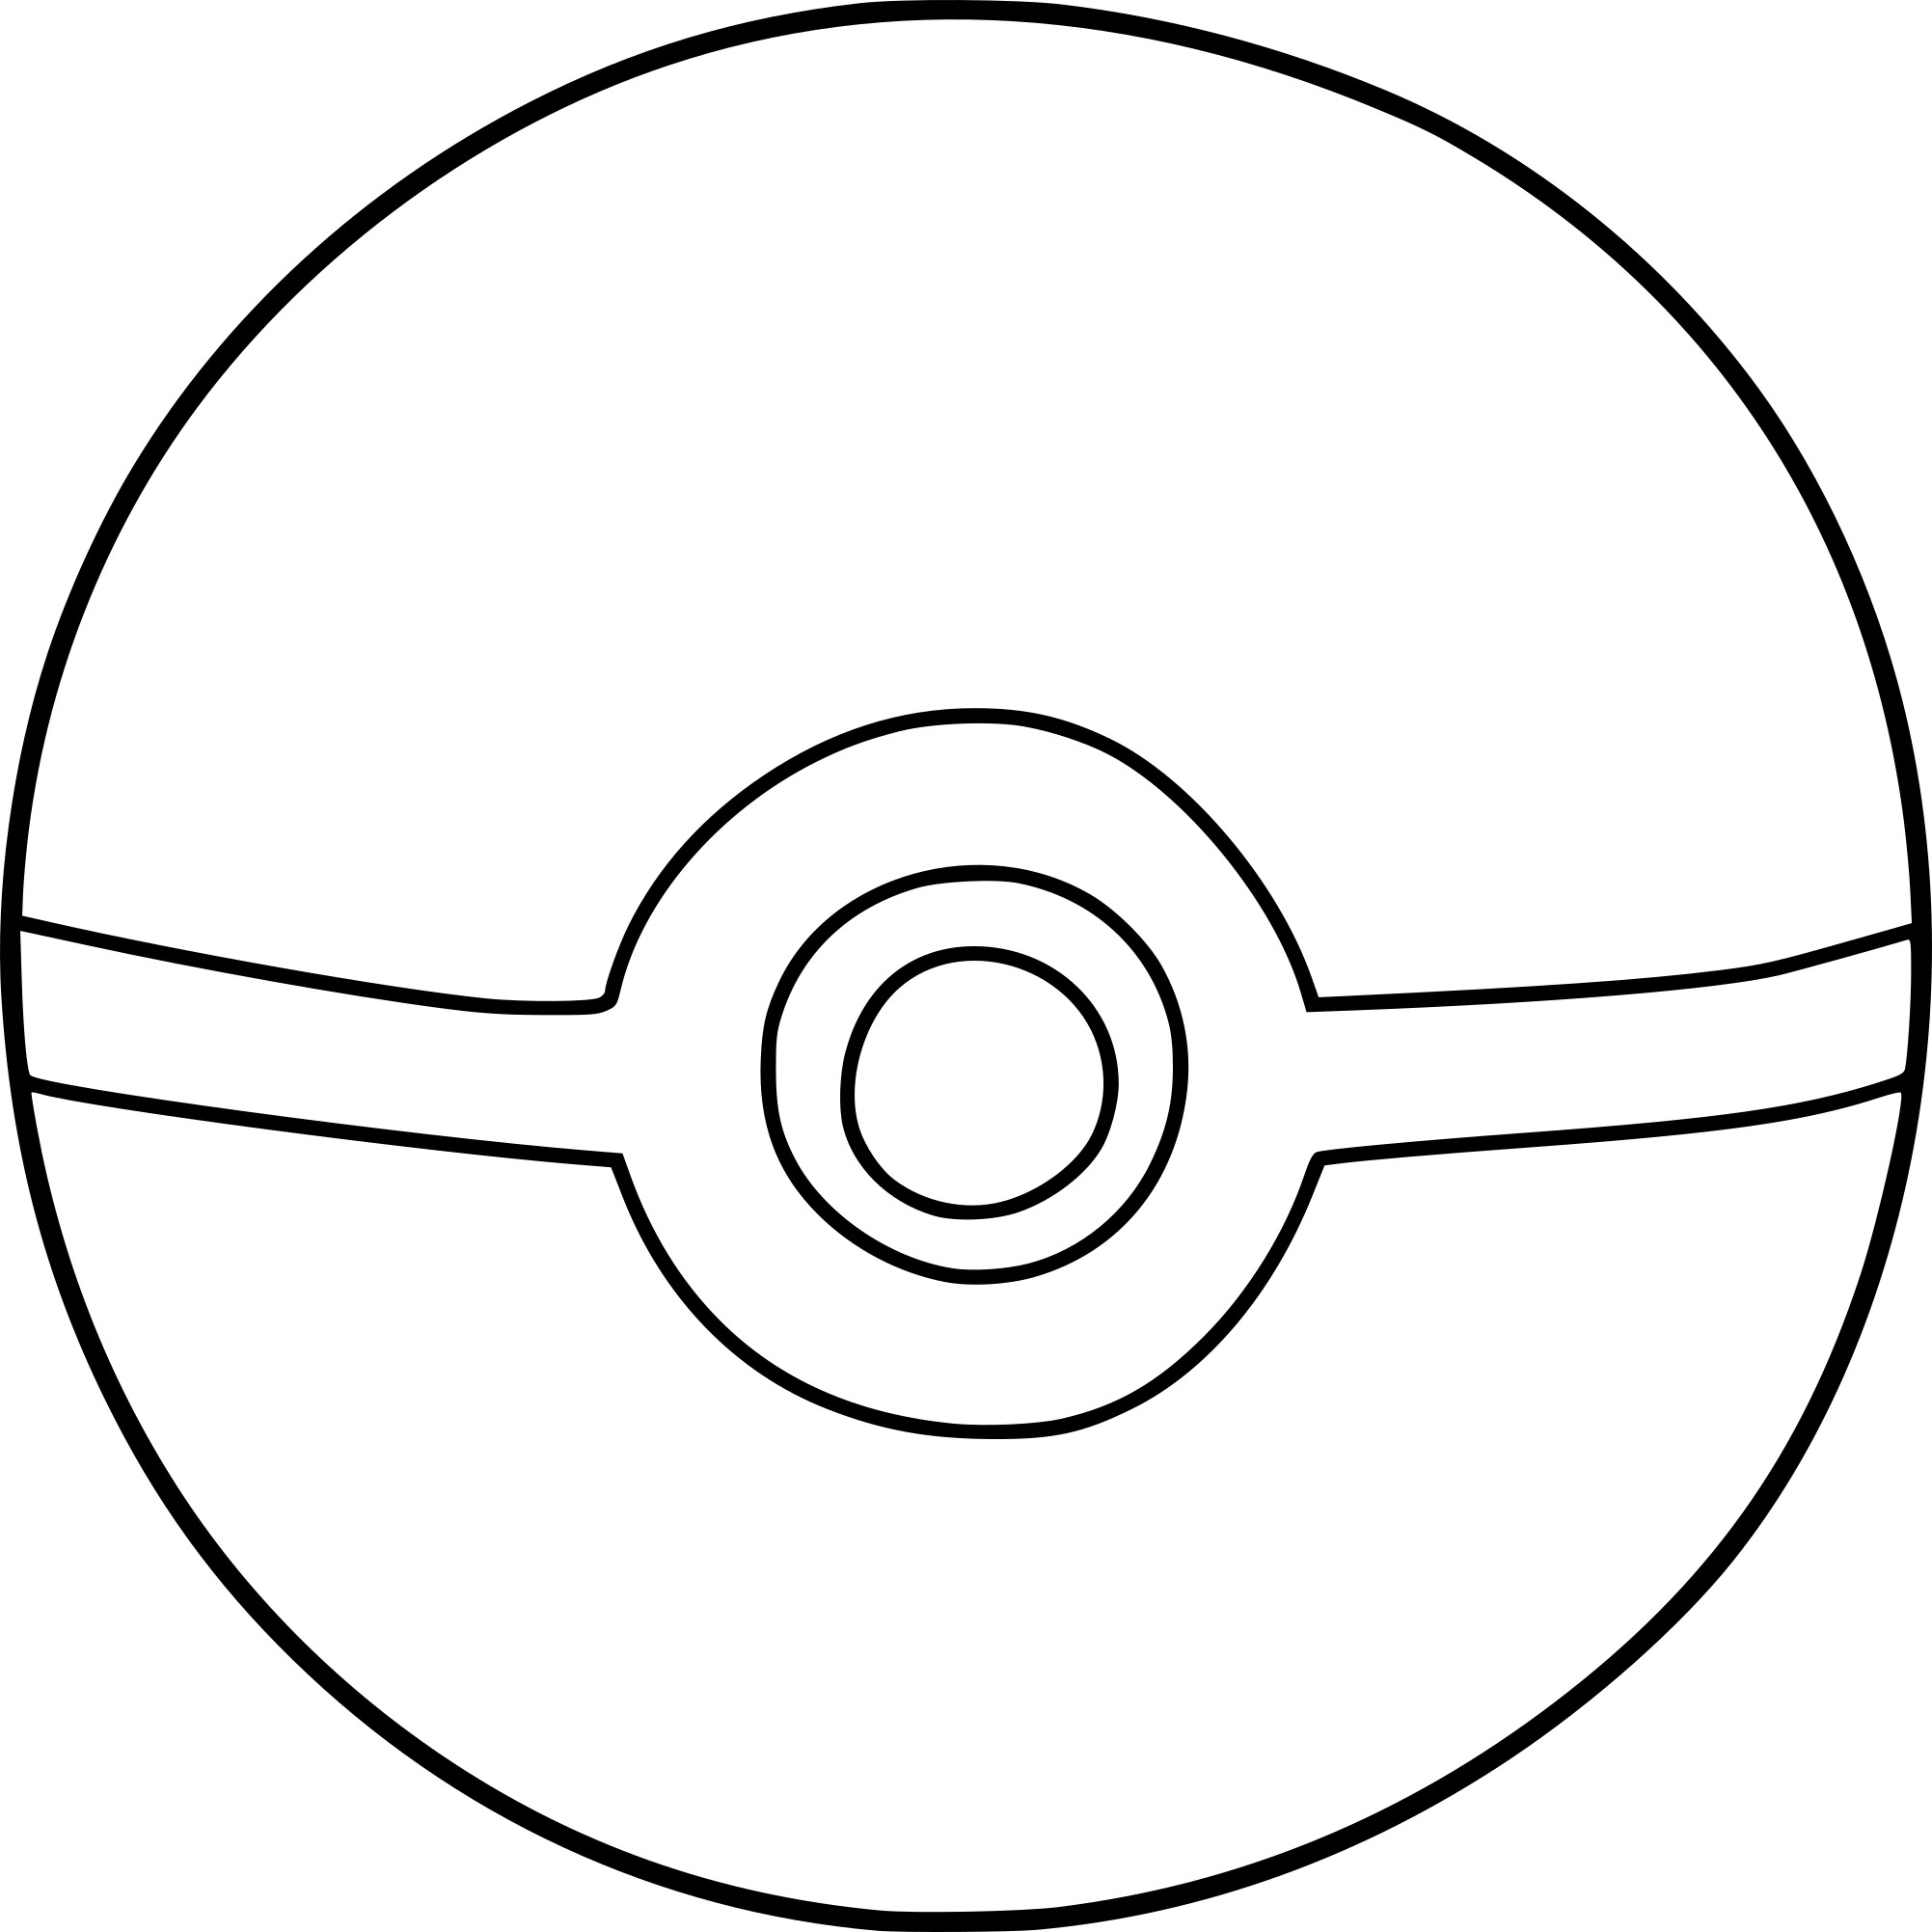 printable pokeball coloring pages - photo#3